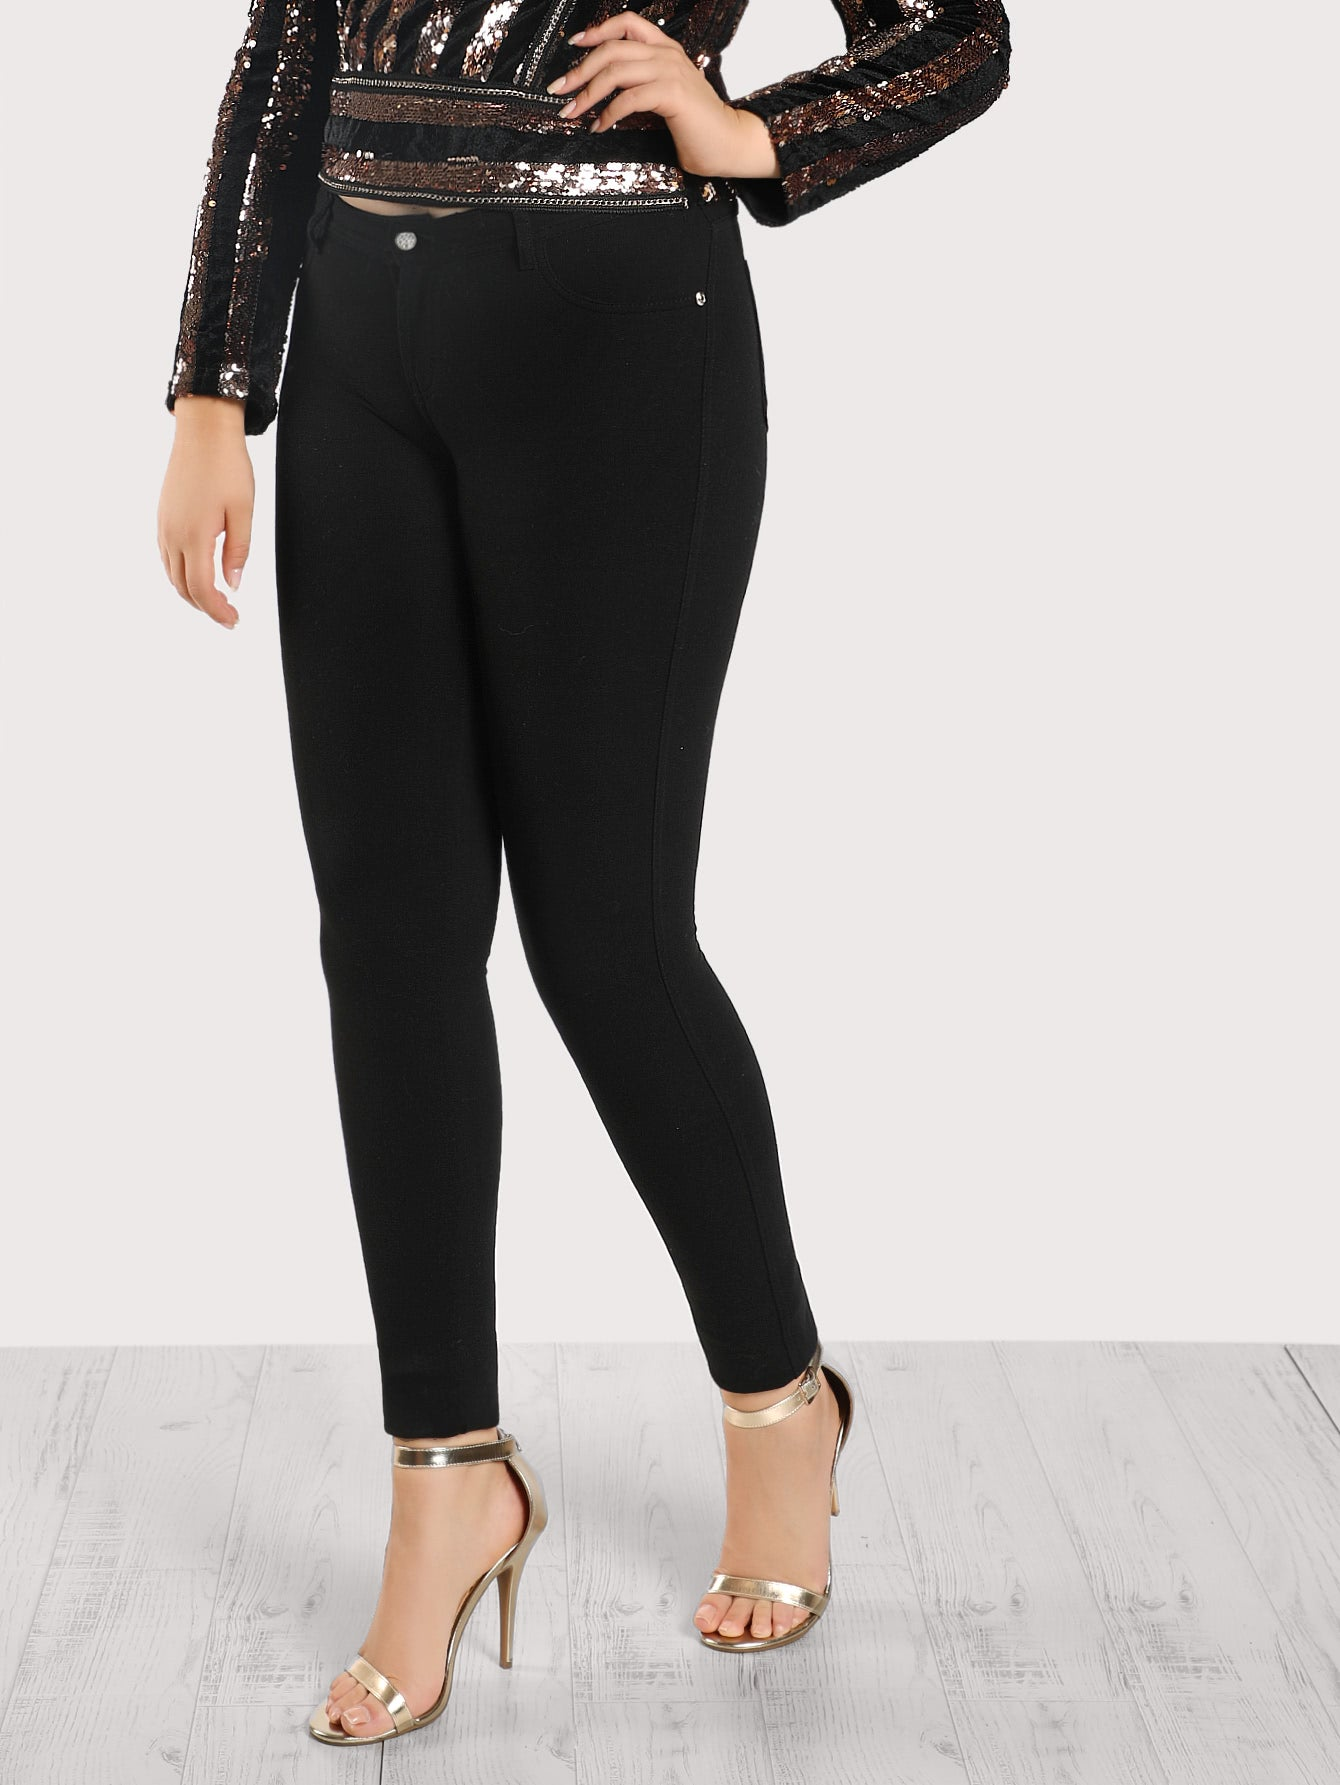 Mid Rise Fitted Jegging Pants